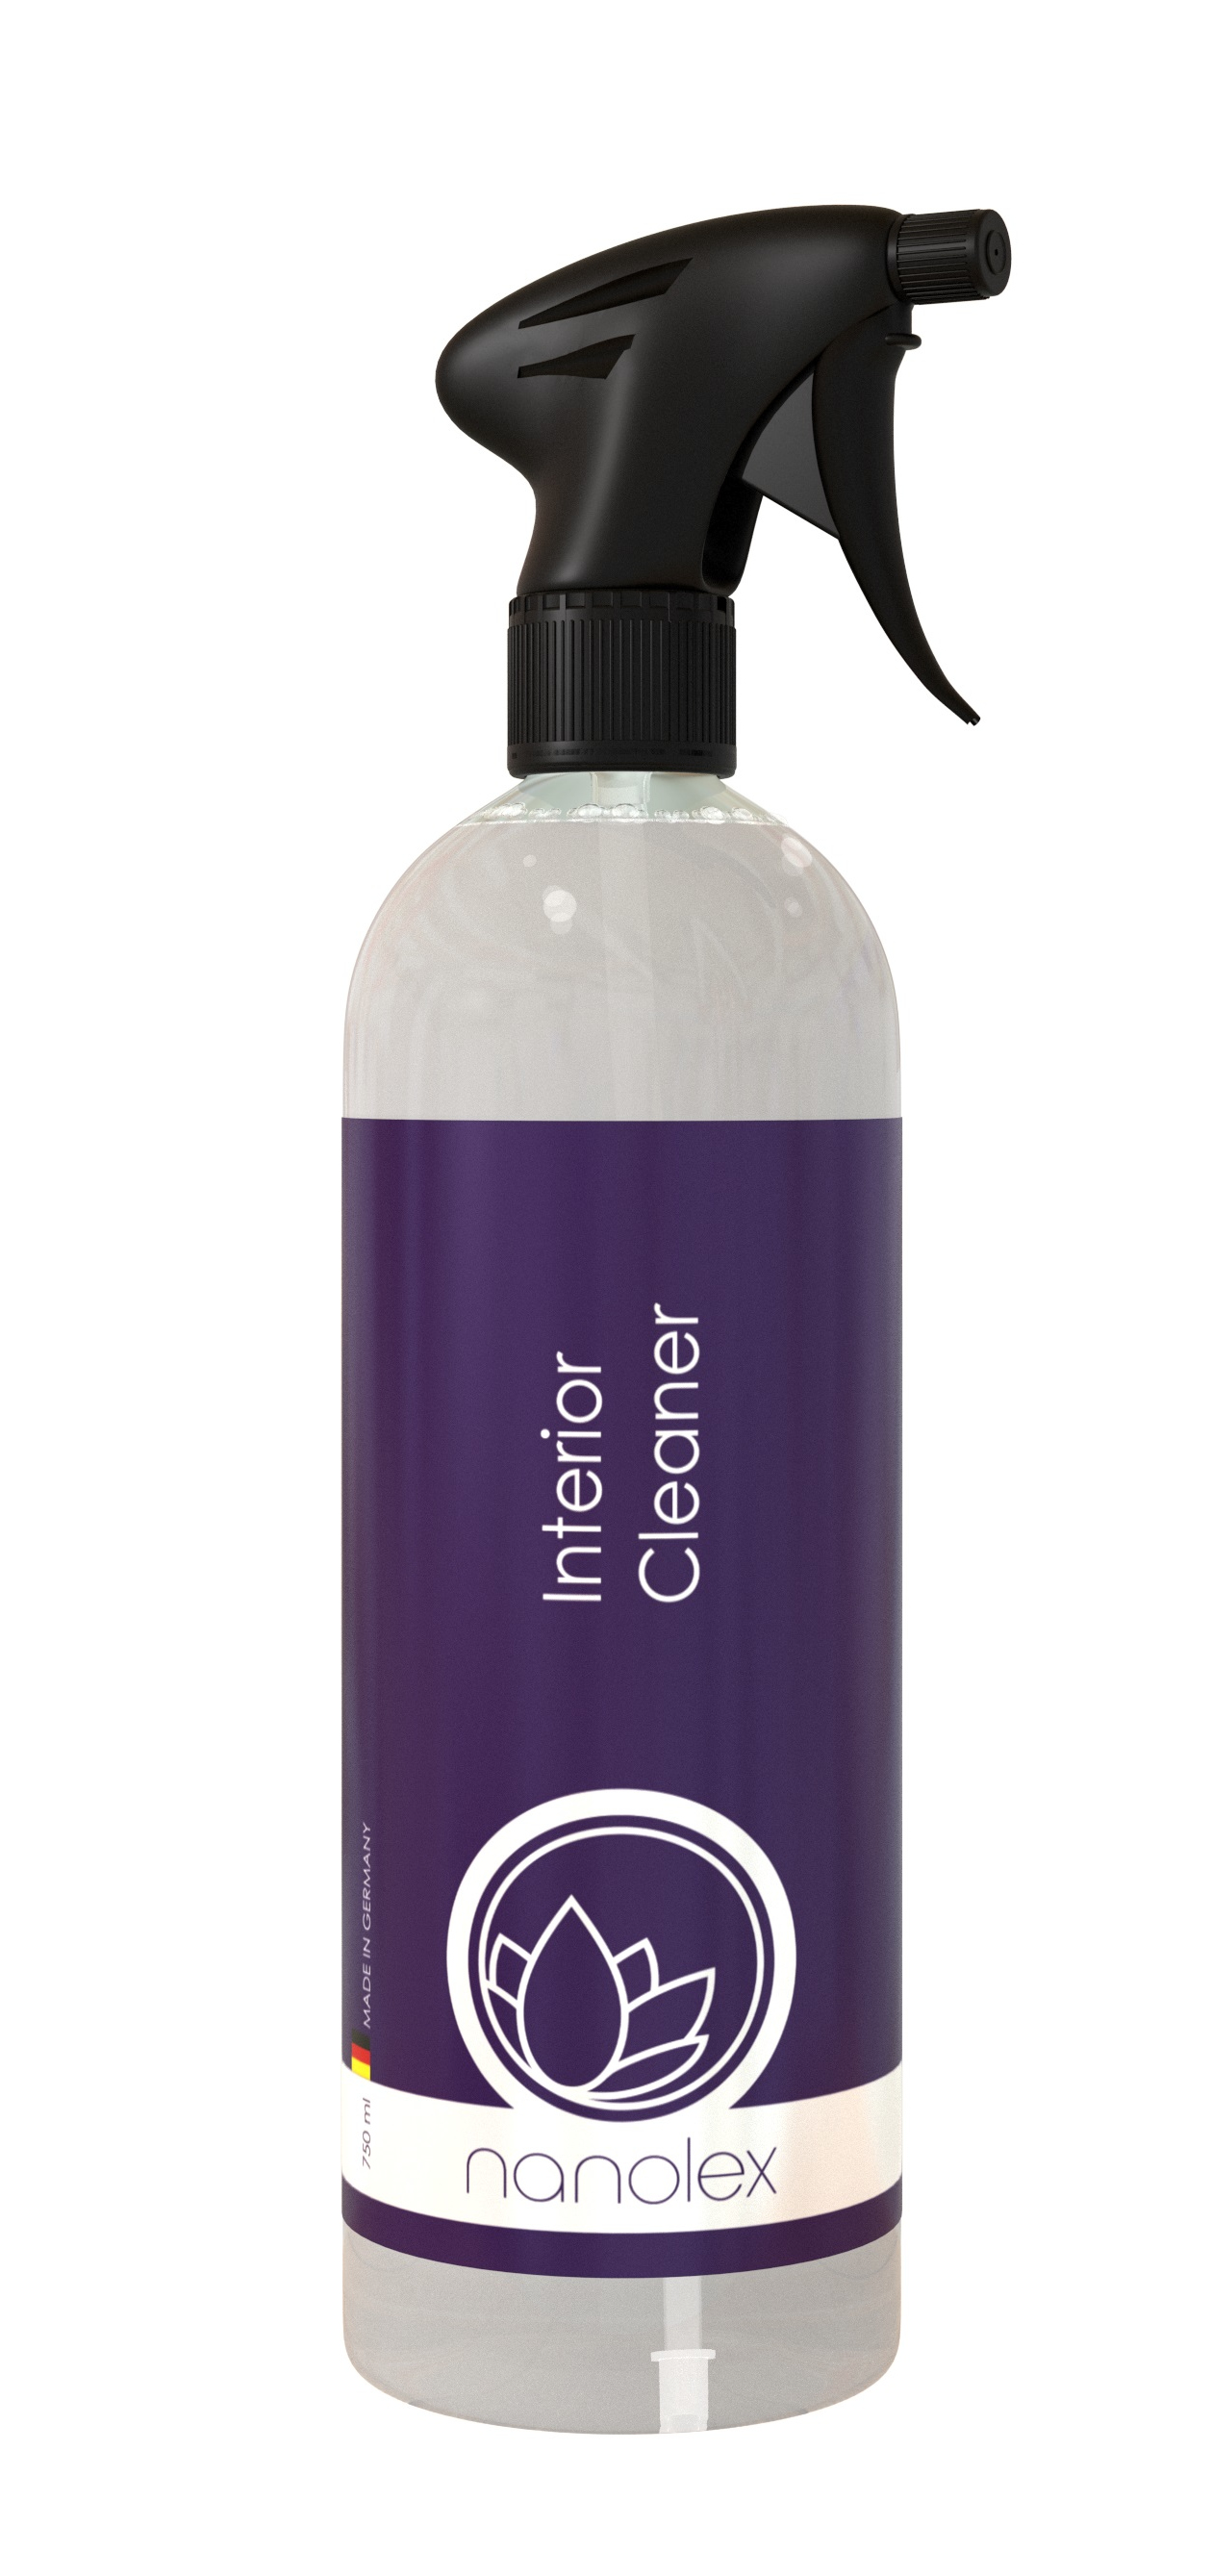 750ml Nanolex Interior Cleaner RTU